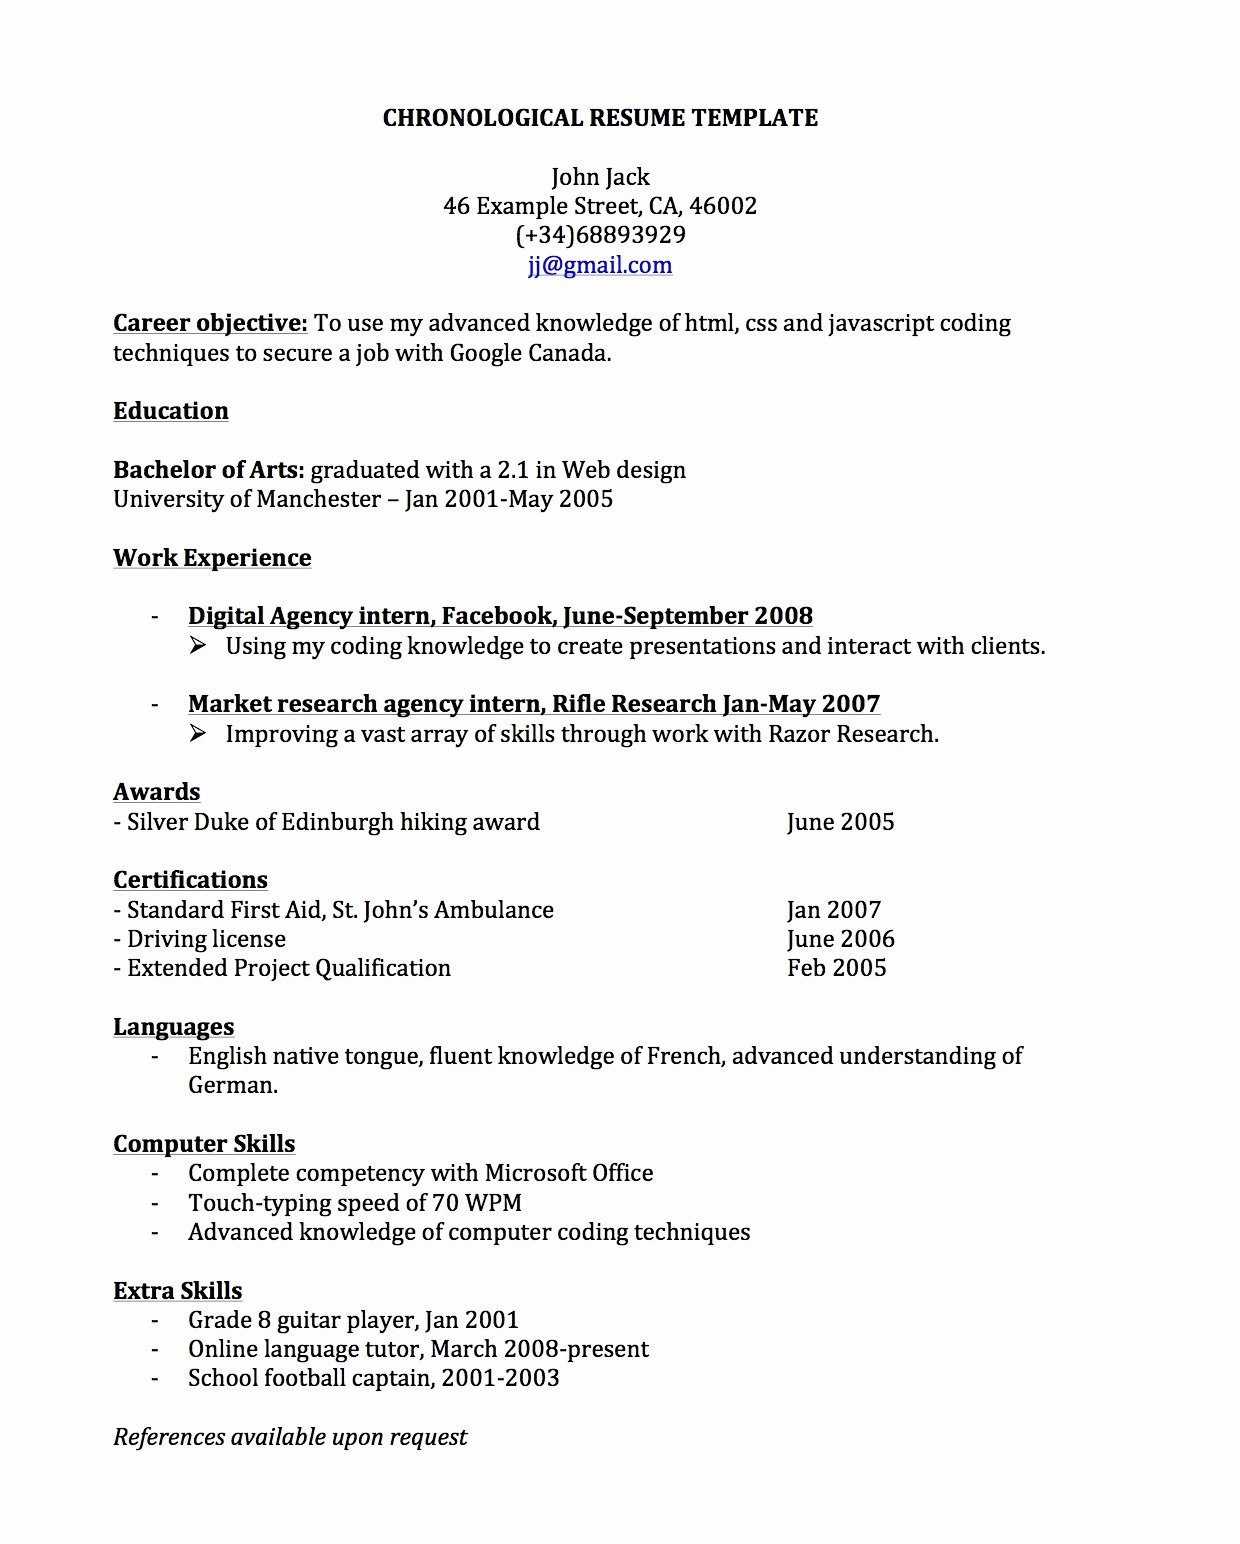 Chronological Resume for Canada